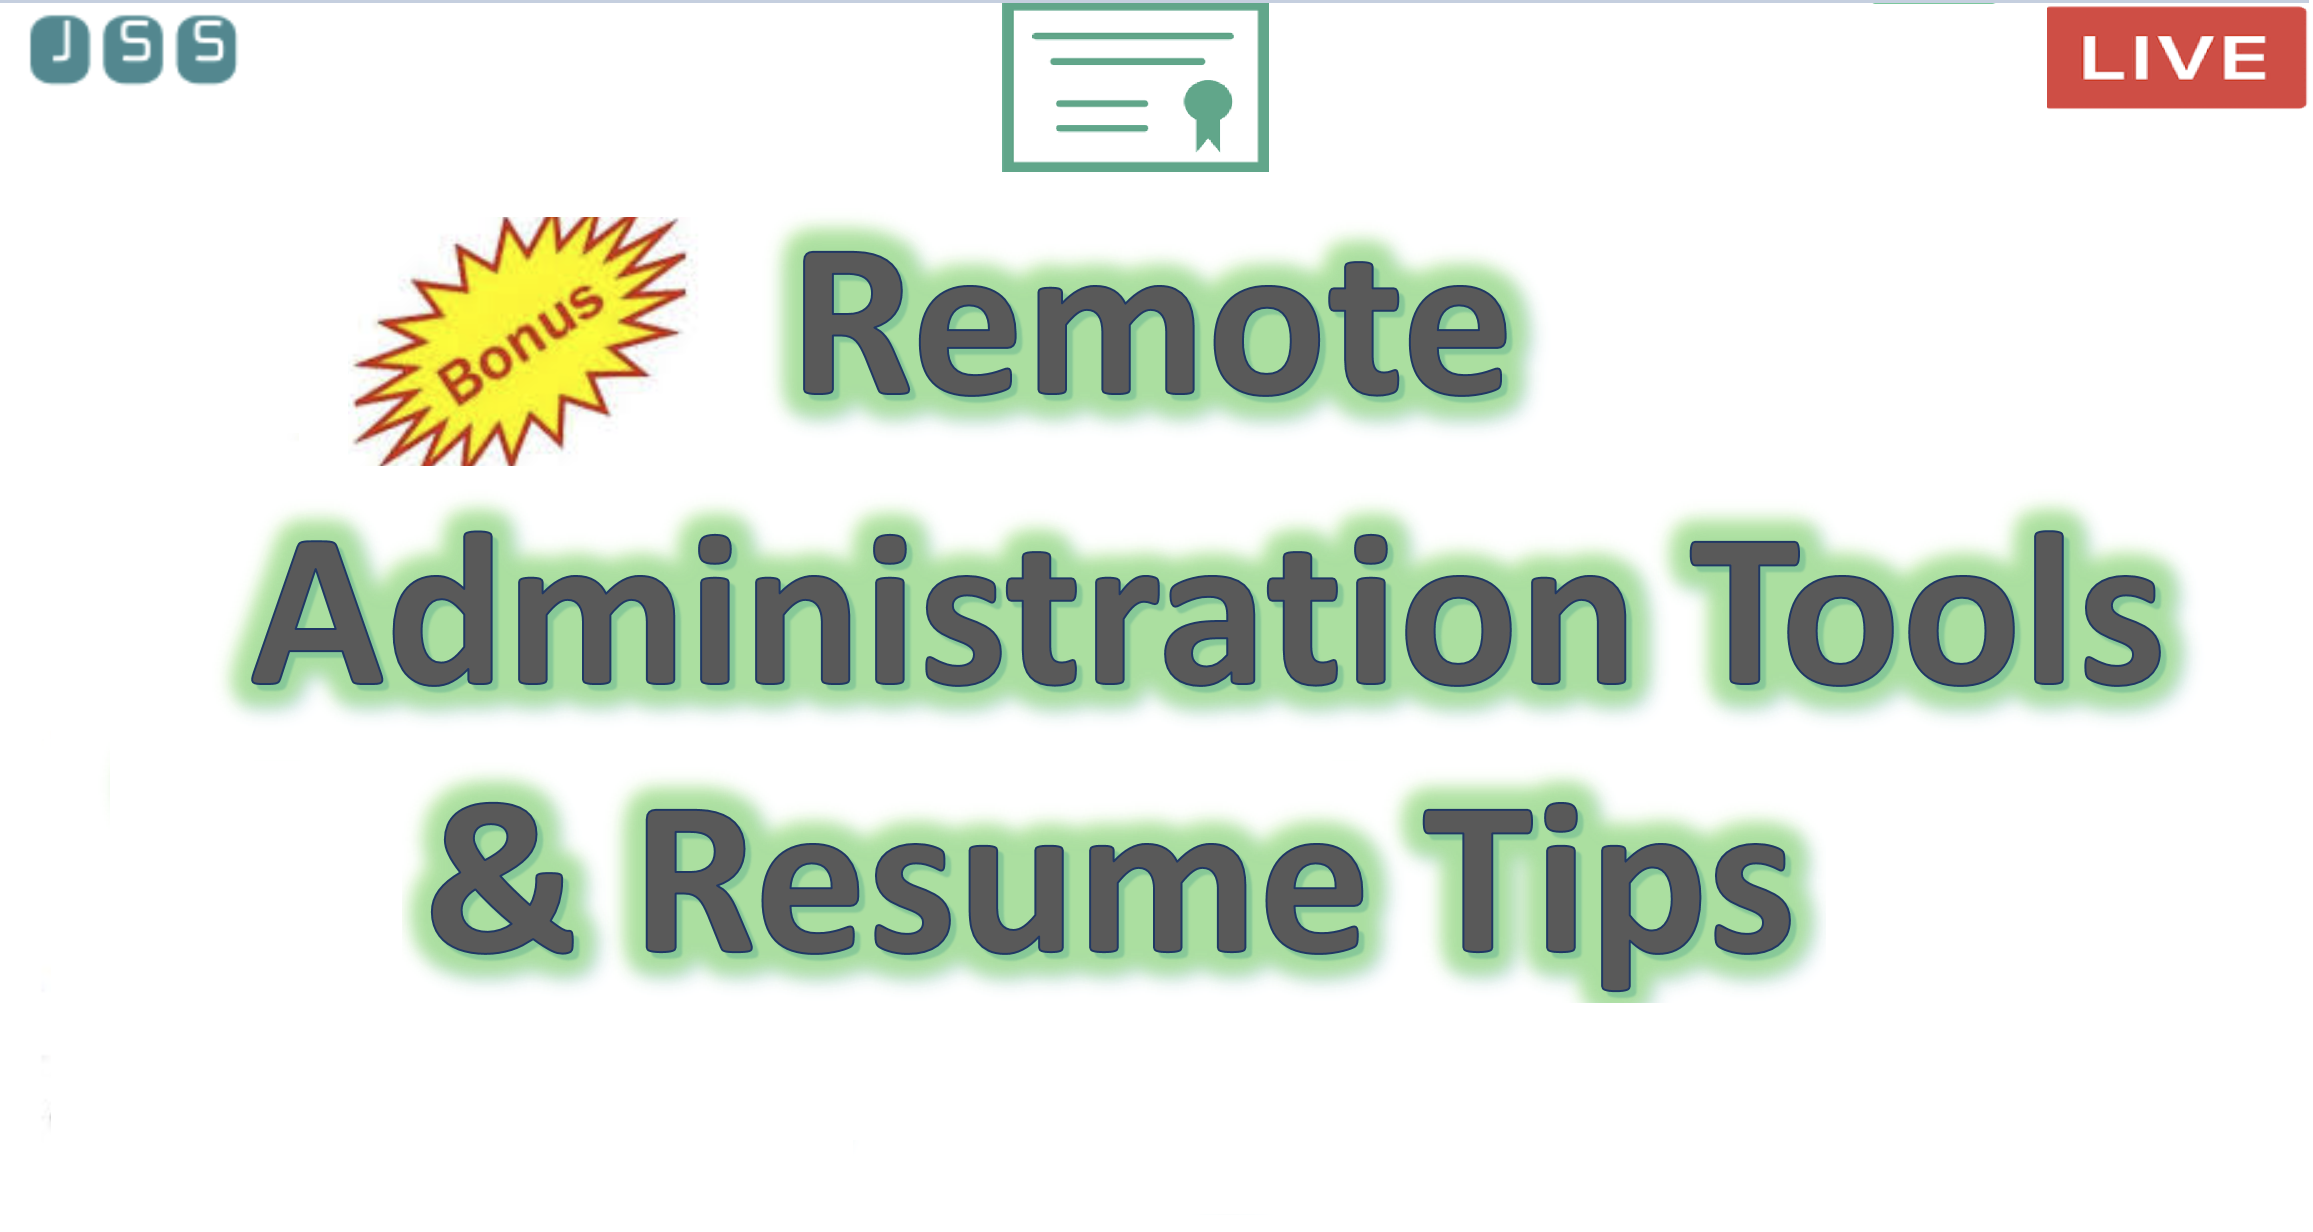 200 125 cisco certified network associate ccna v3 remote administration tools and resume tips xflitez Choice Image